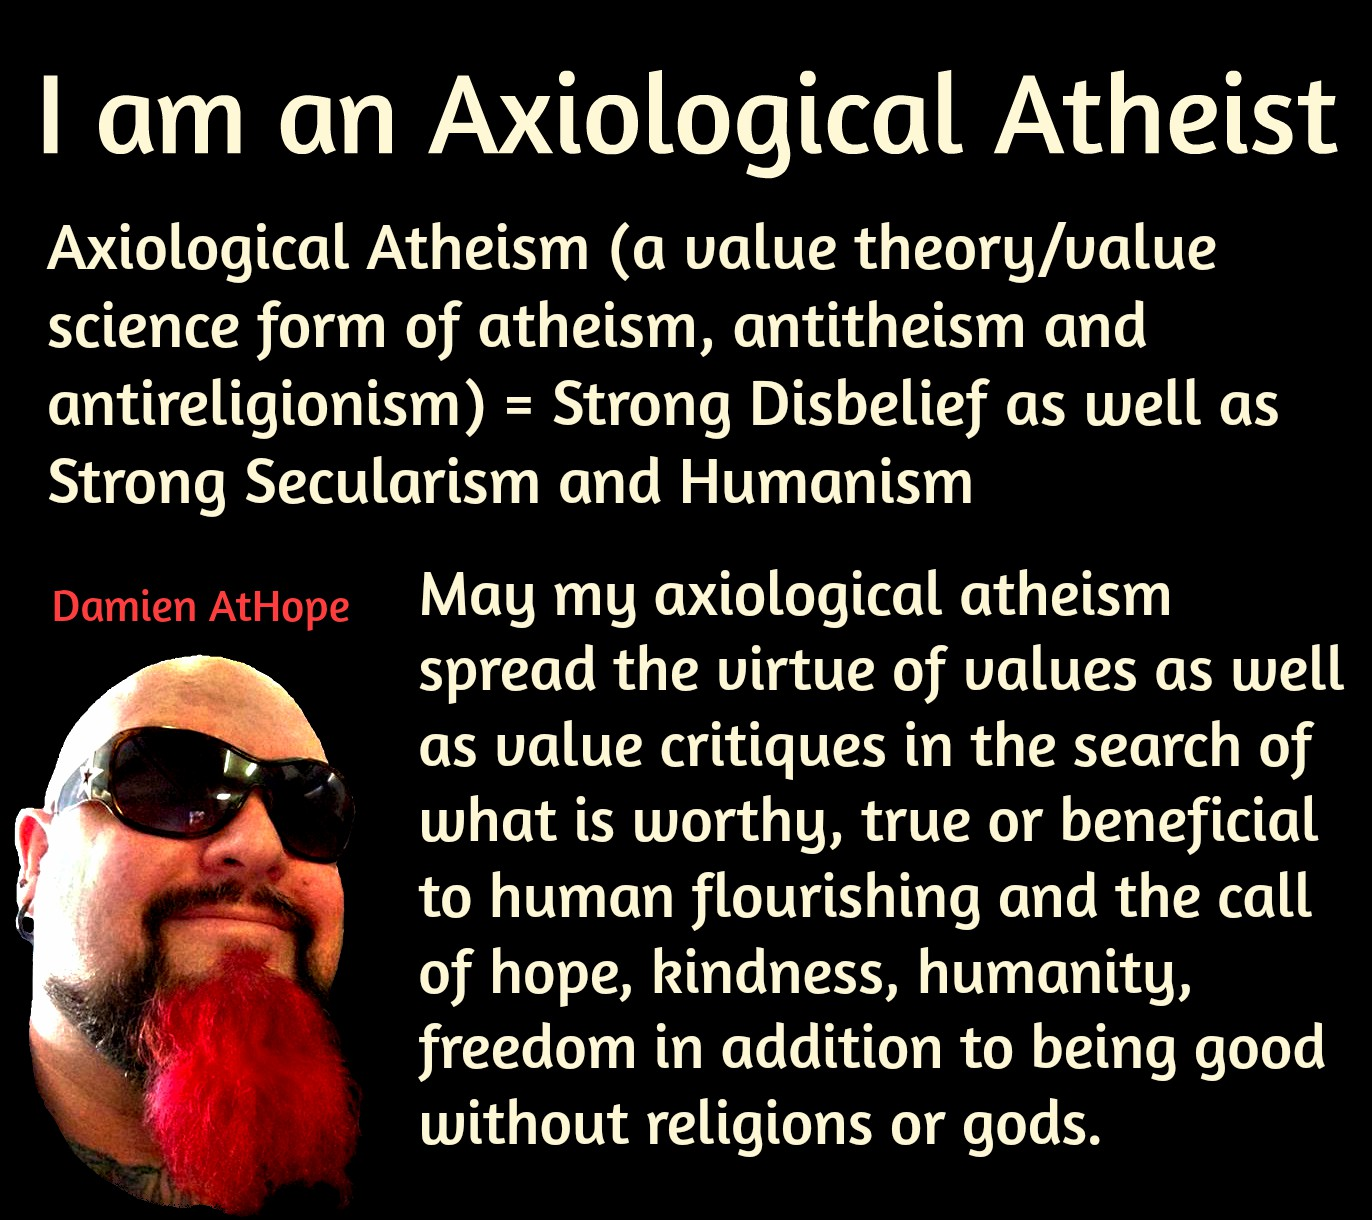 Atheism: Axiological Atheism Explained